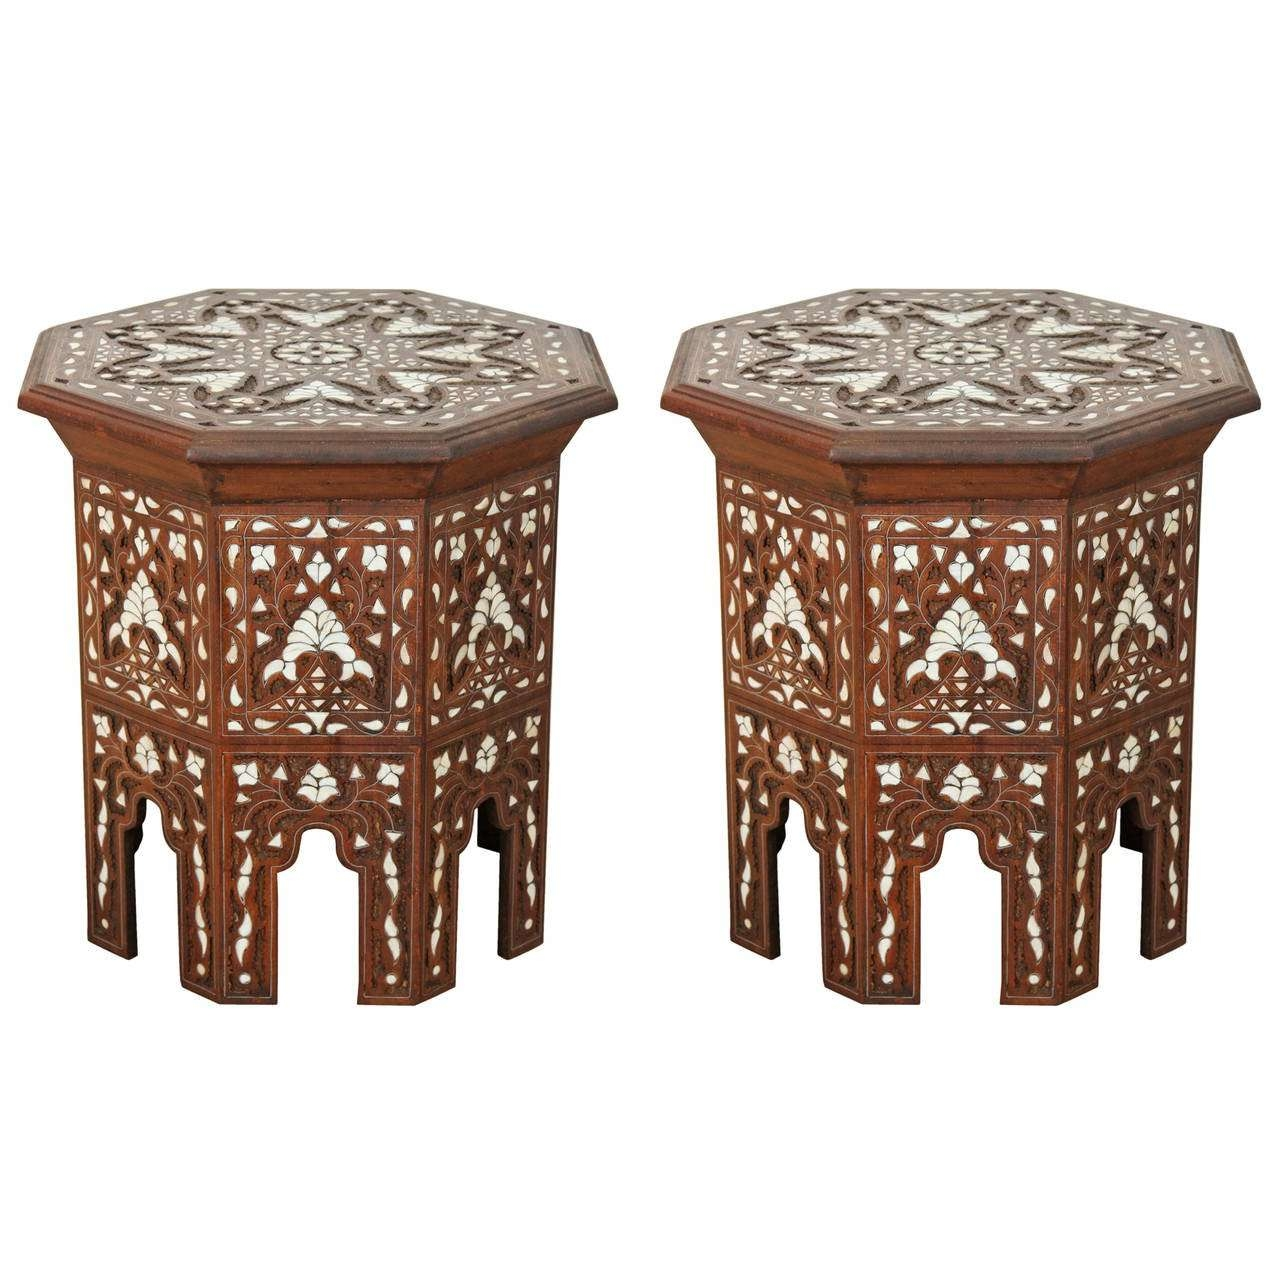 Pair Of Syrian Mother Of Pearl Inlaid Side Tables For Sale At 1stdibs For Favorite Mother Of Pearl Coffee Tables (View 4 of 20)